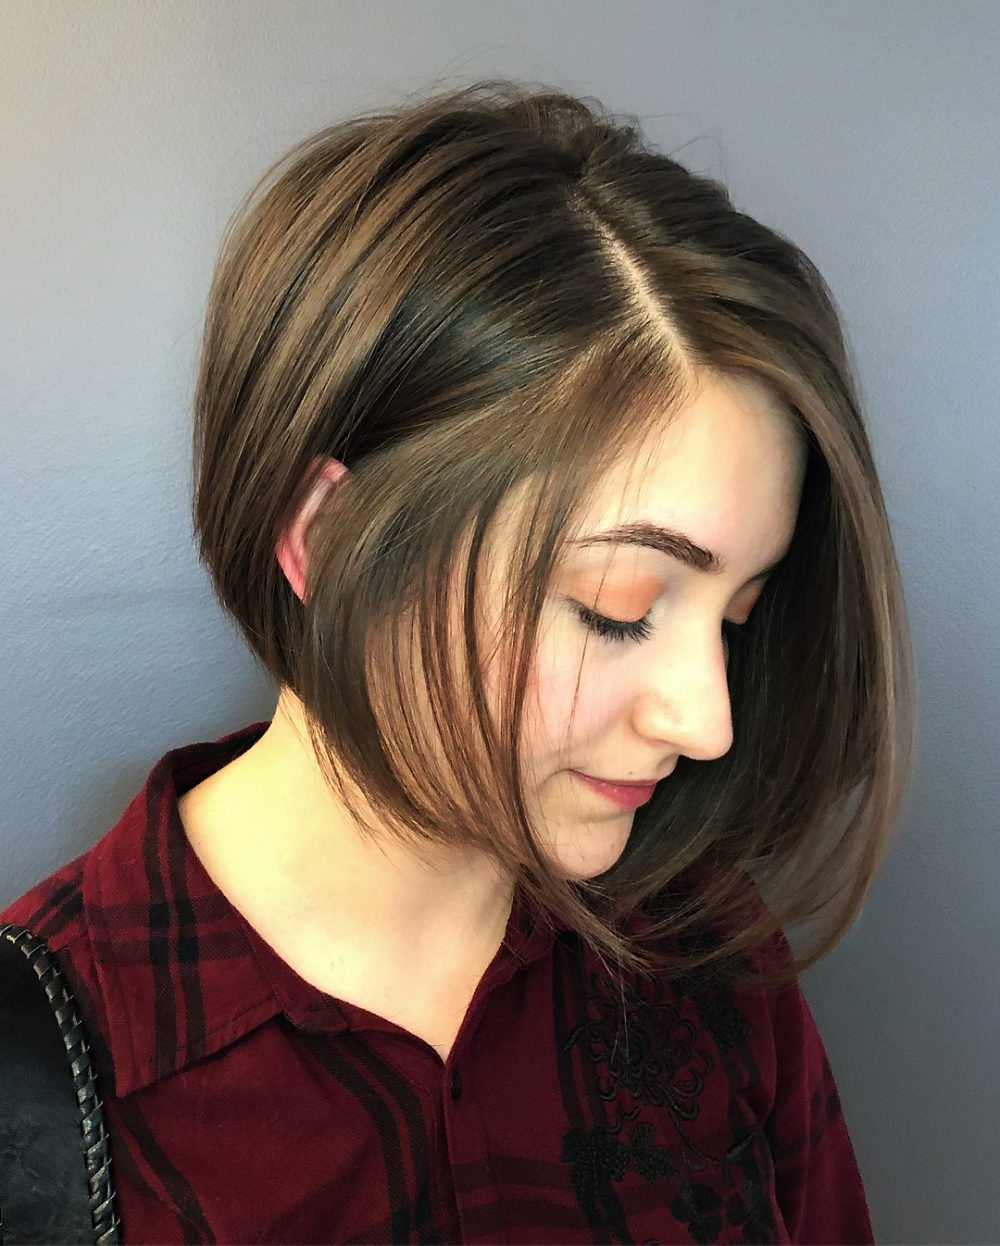 33 Flattering Short Hairstyles For Round Faces In 2018 Pertaining To Pictures Of Short Hairstyles For Round Faces (View 2 of 25)